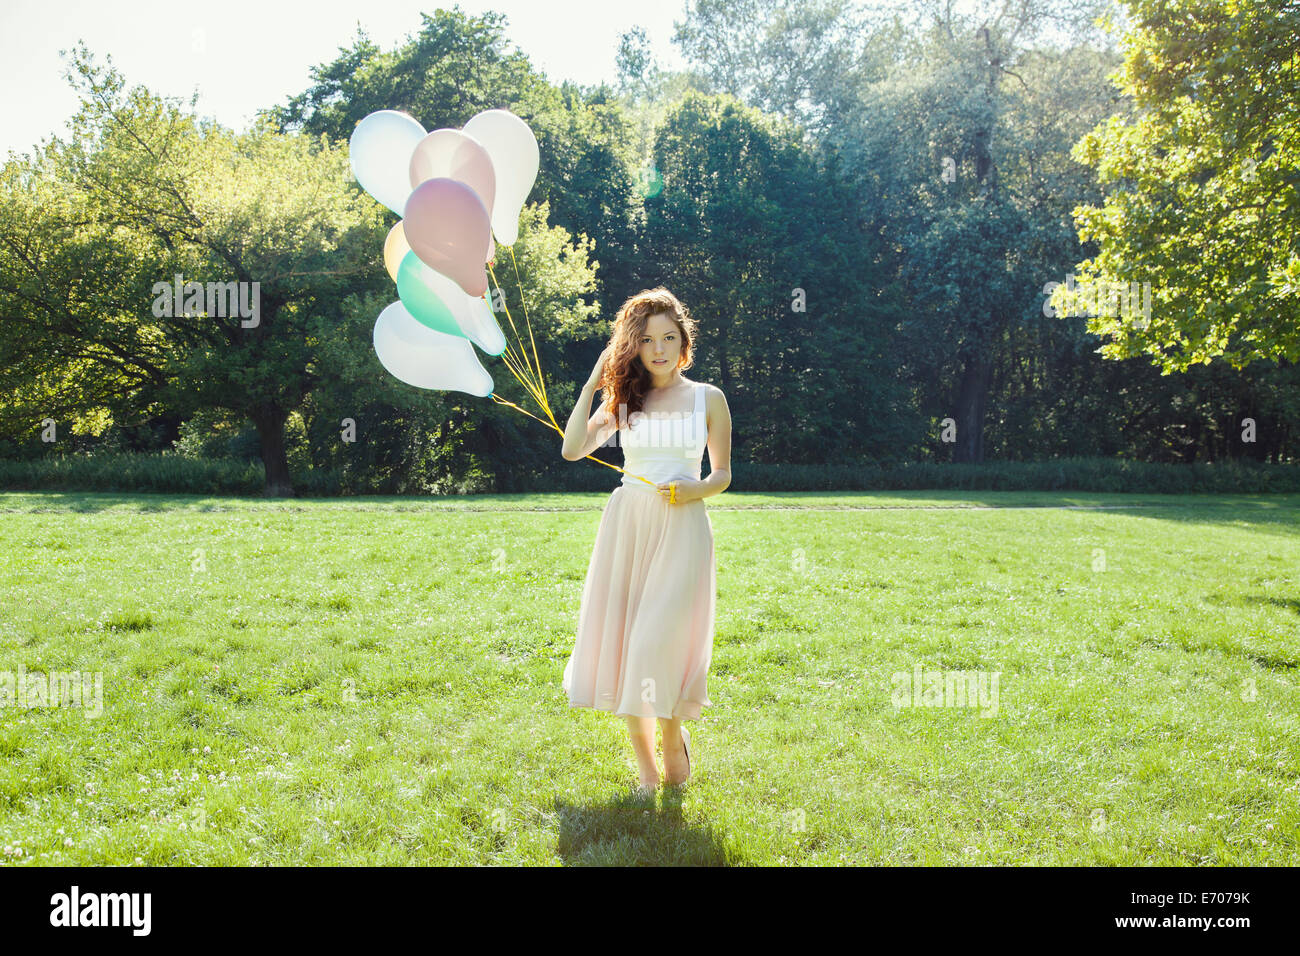 Portrait of shy young woman in park holding a bunch of balloons - Stock Image